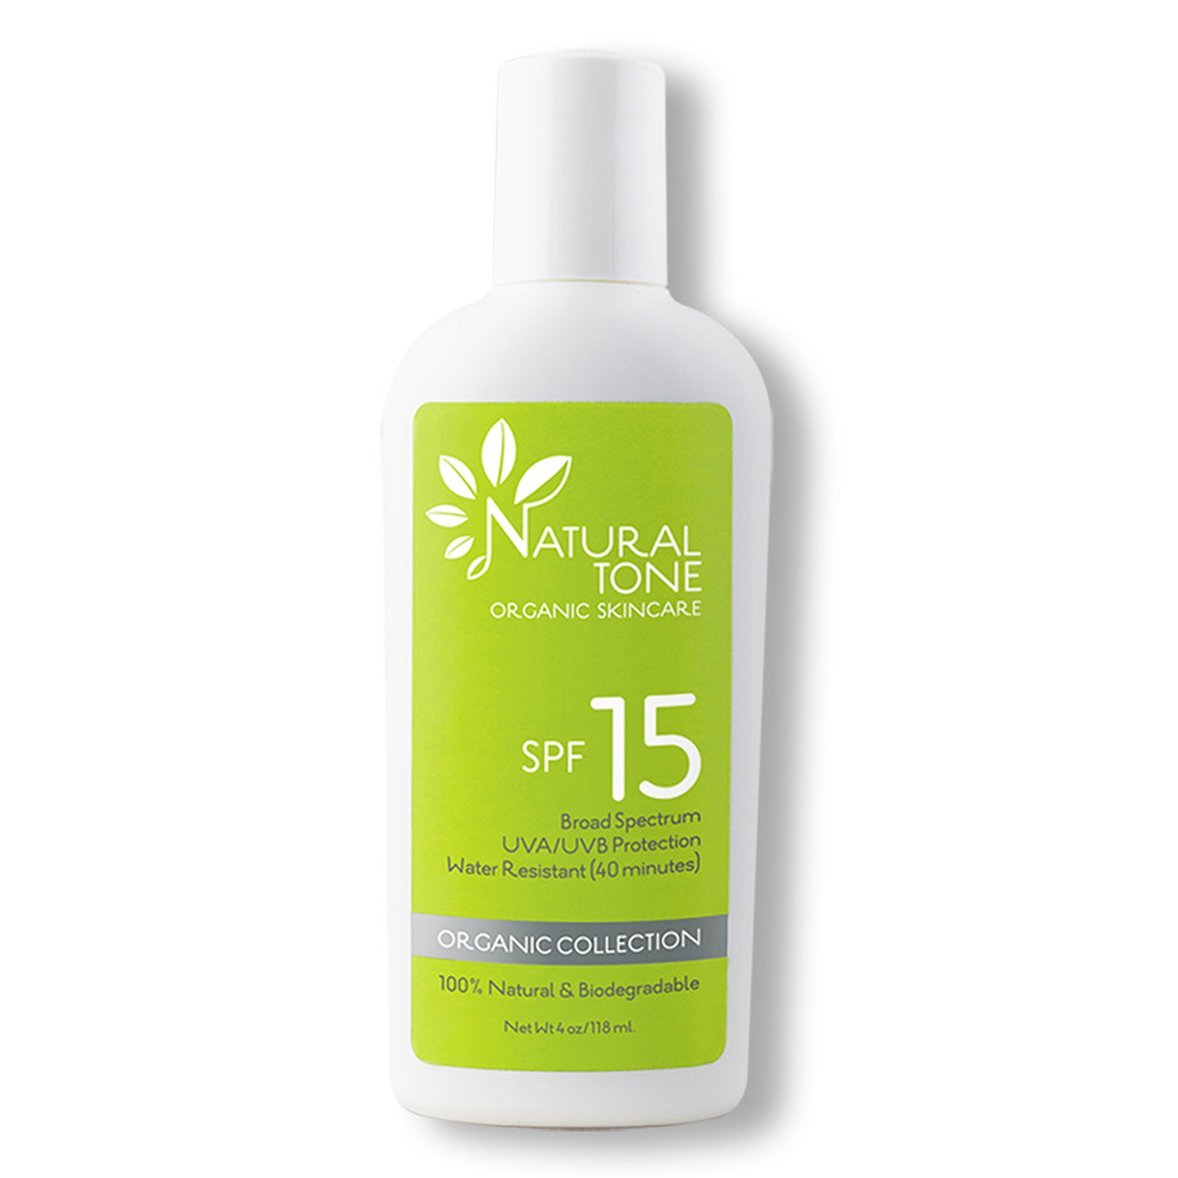 SPF 15 Natural Sunscreen - Natural Tone Organic Skincare